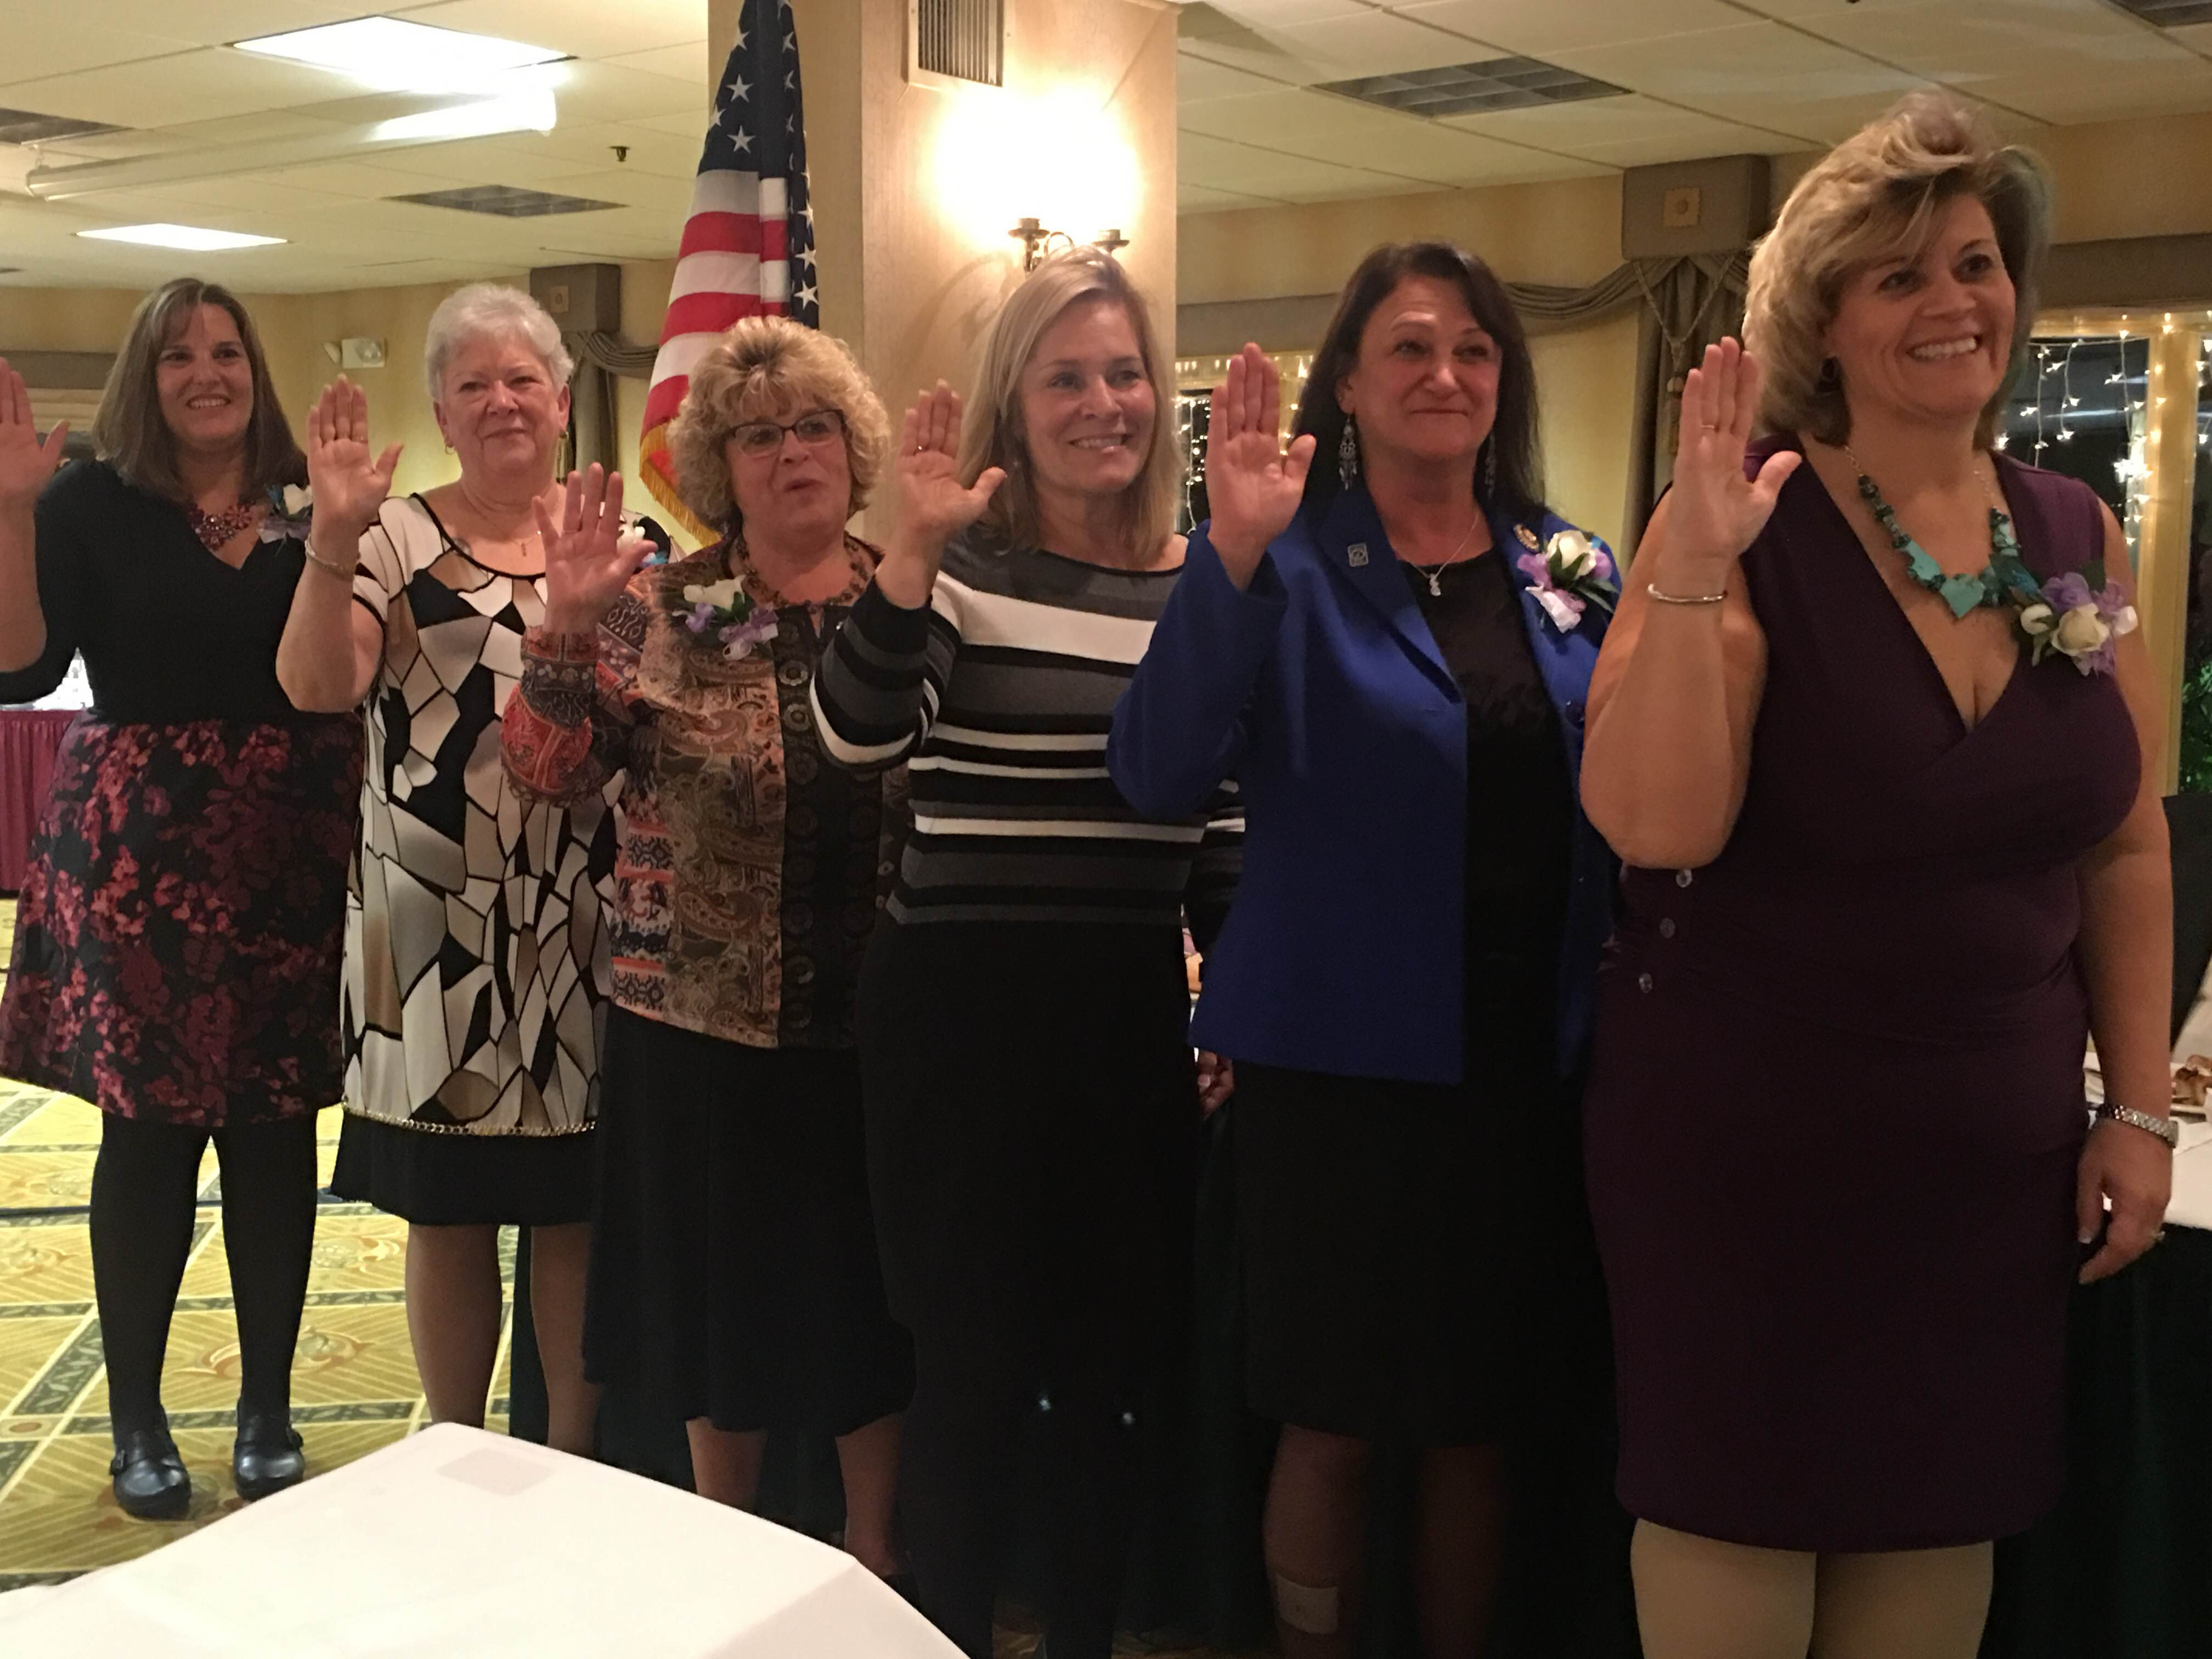 Executive Board Members from left to right:  1st Vice President Sandi Allard, Lebanon, 2nd Vice President Raymah Simpson, Bristol, Treasurer Betty Ramspott, Sunapee, Secretary Barbara Clark, East Kingston, Webmaster Sue McKinnon, Newfields and Past President Kerri Parker, Meredith.